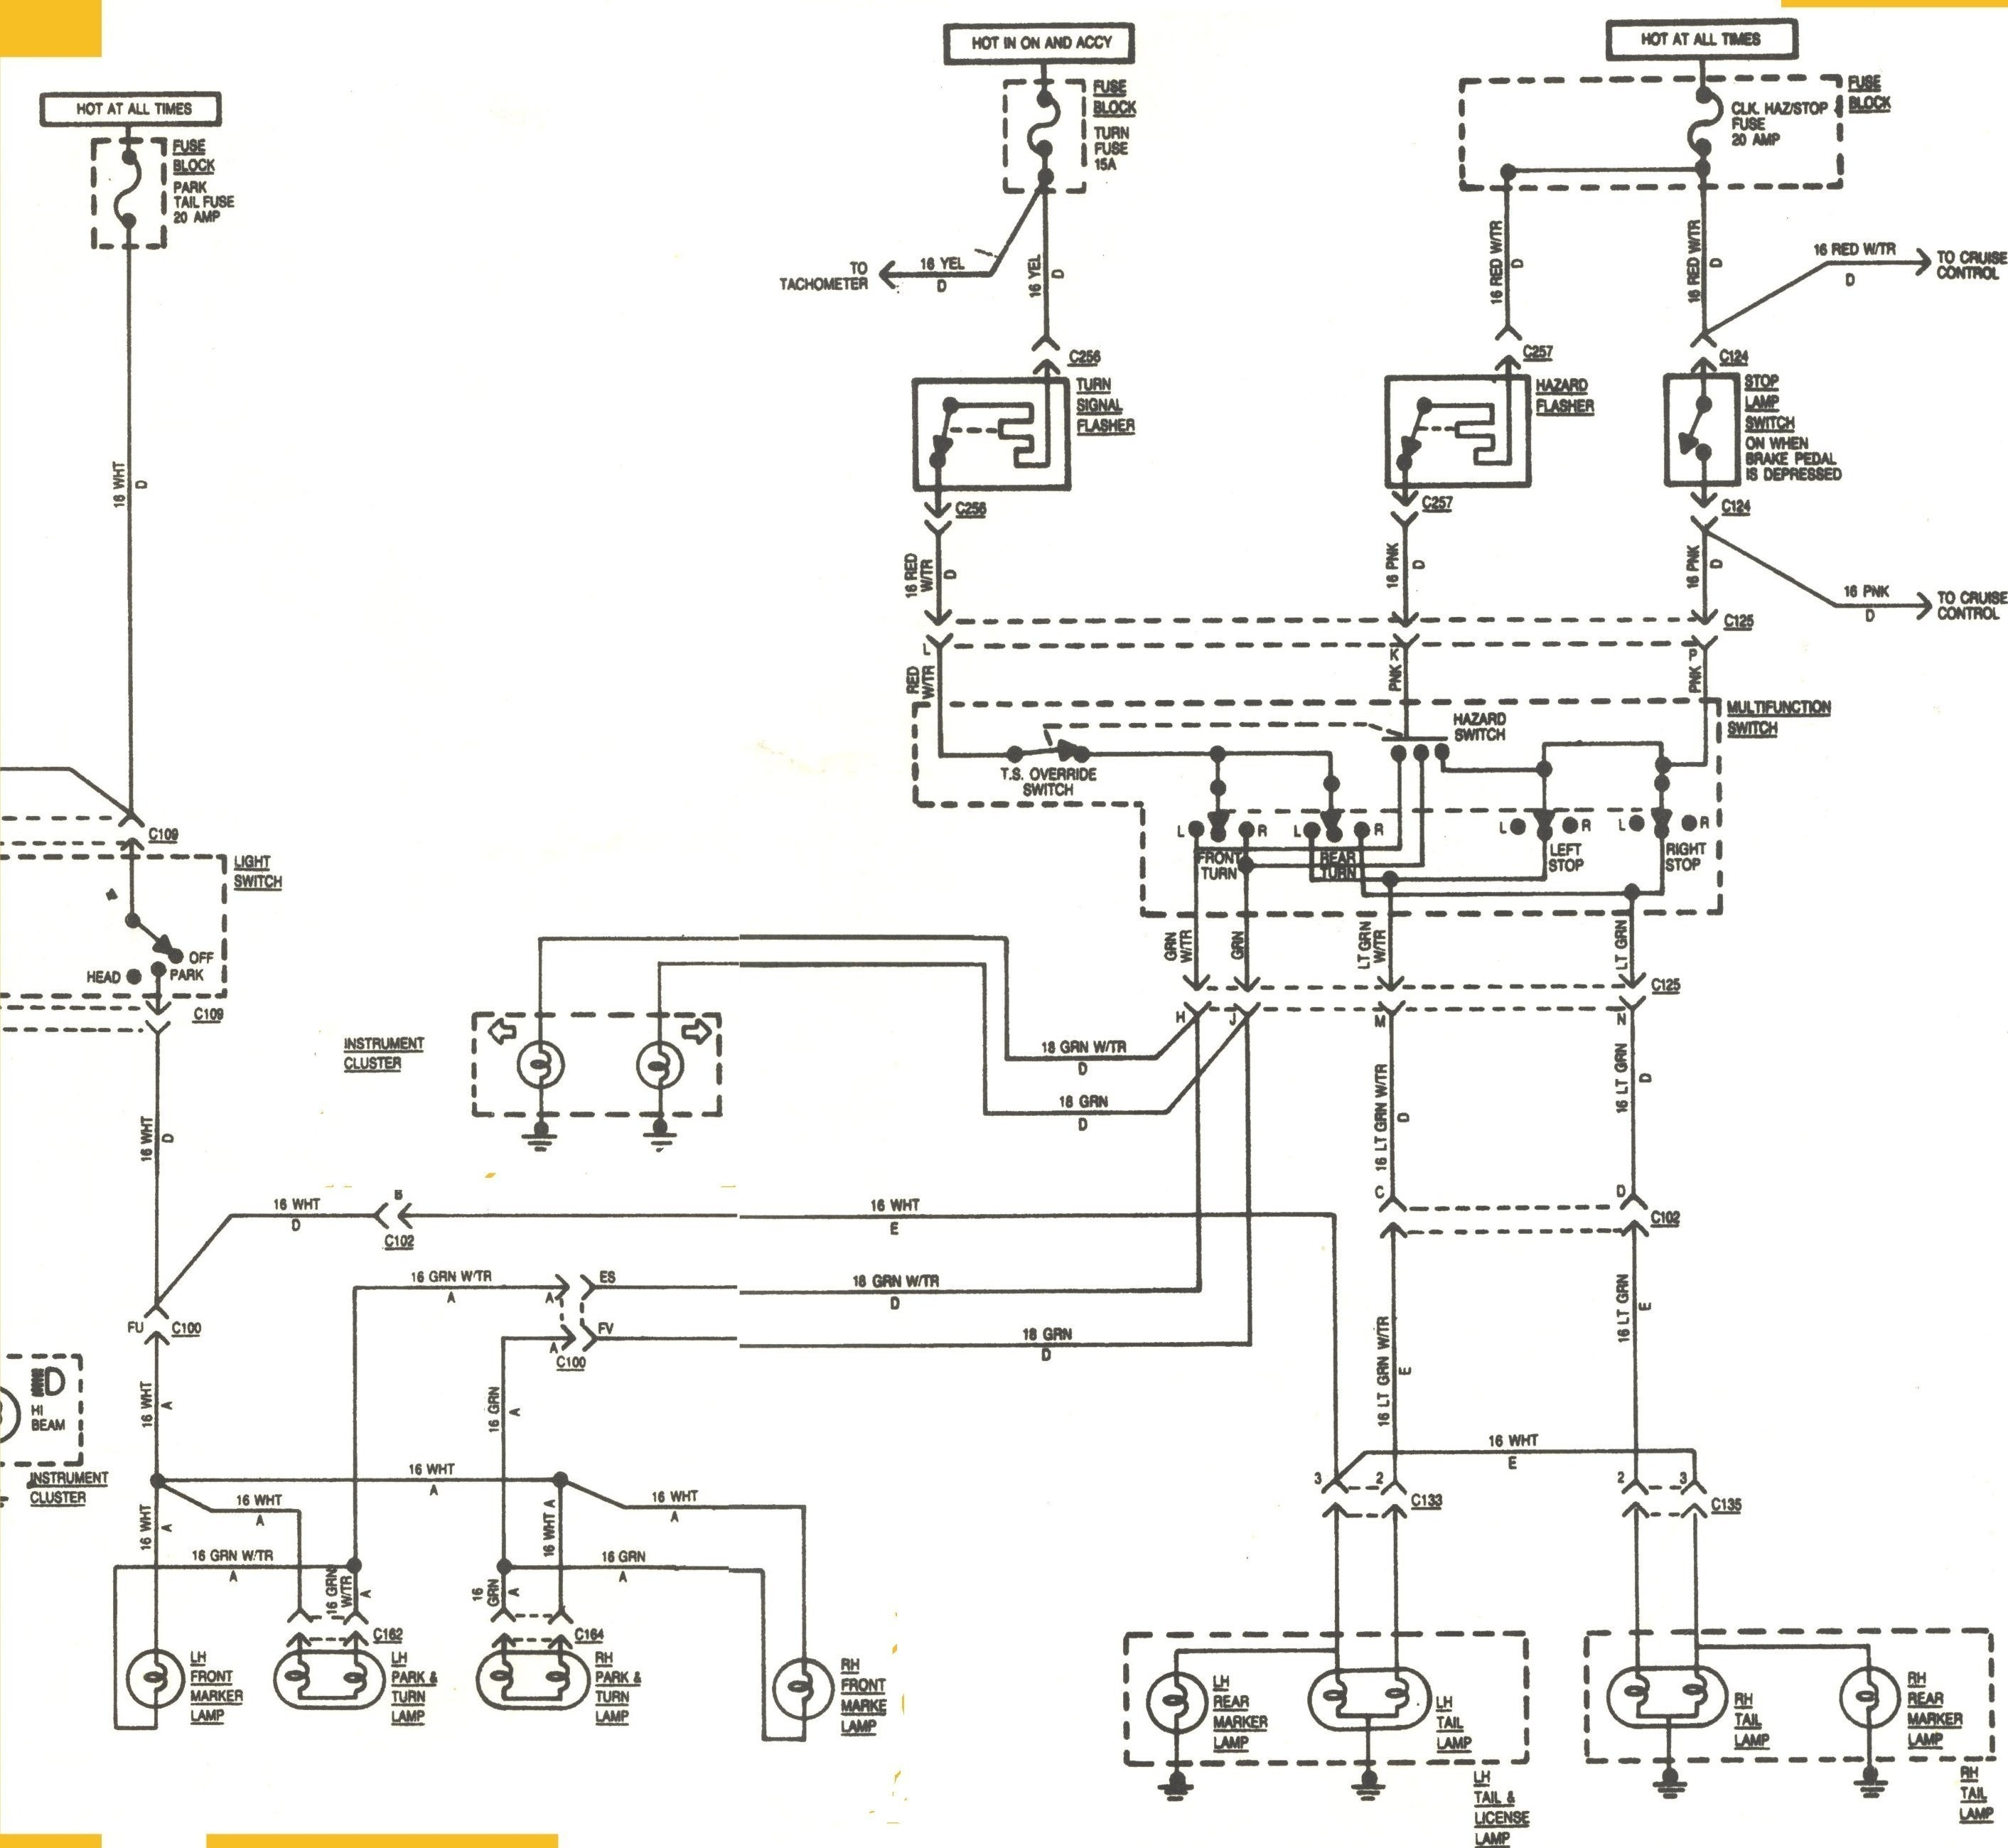 Turn Signal Schematic Diagram Turn Signal Flasher Diagram Turn Signal Wiring Diagram Turn Signal